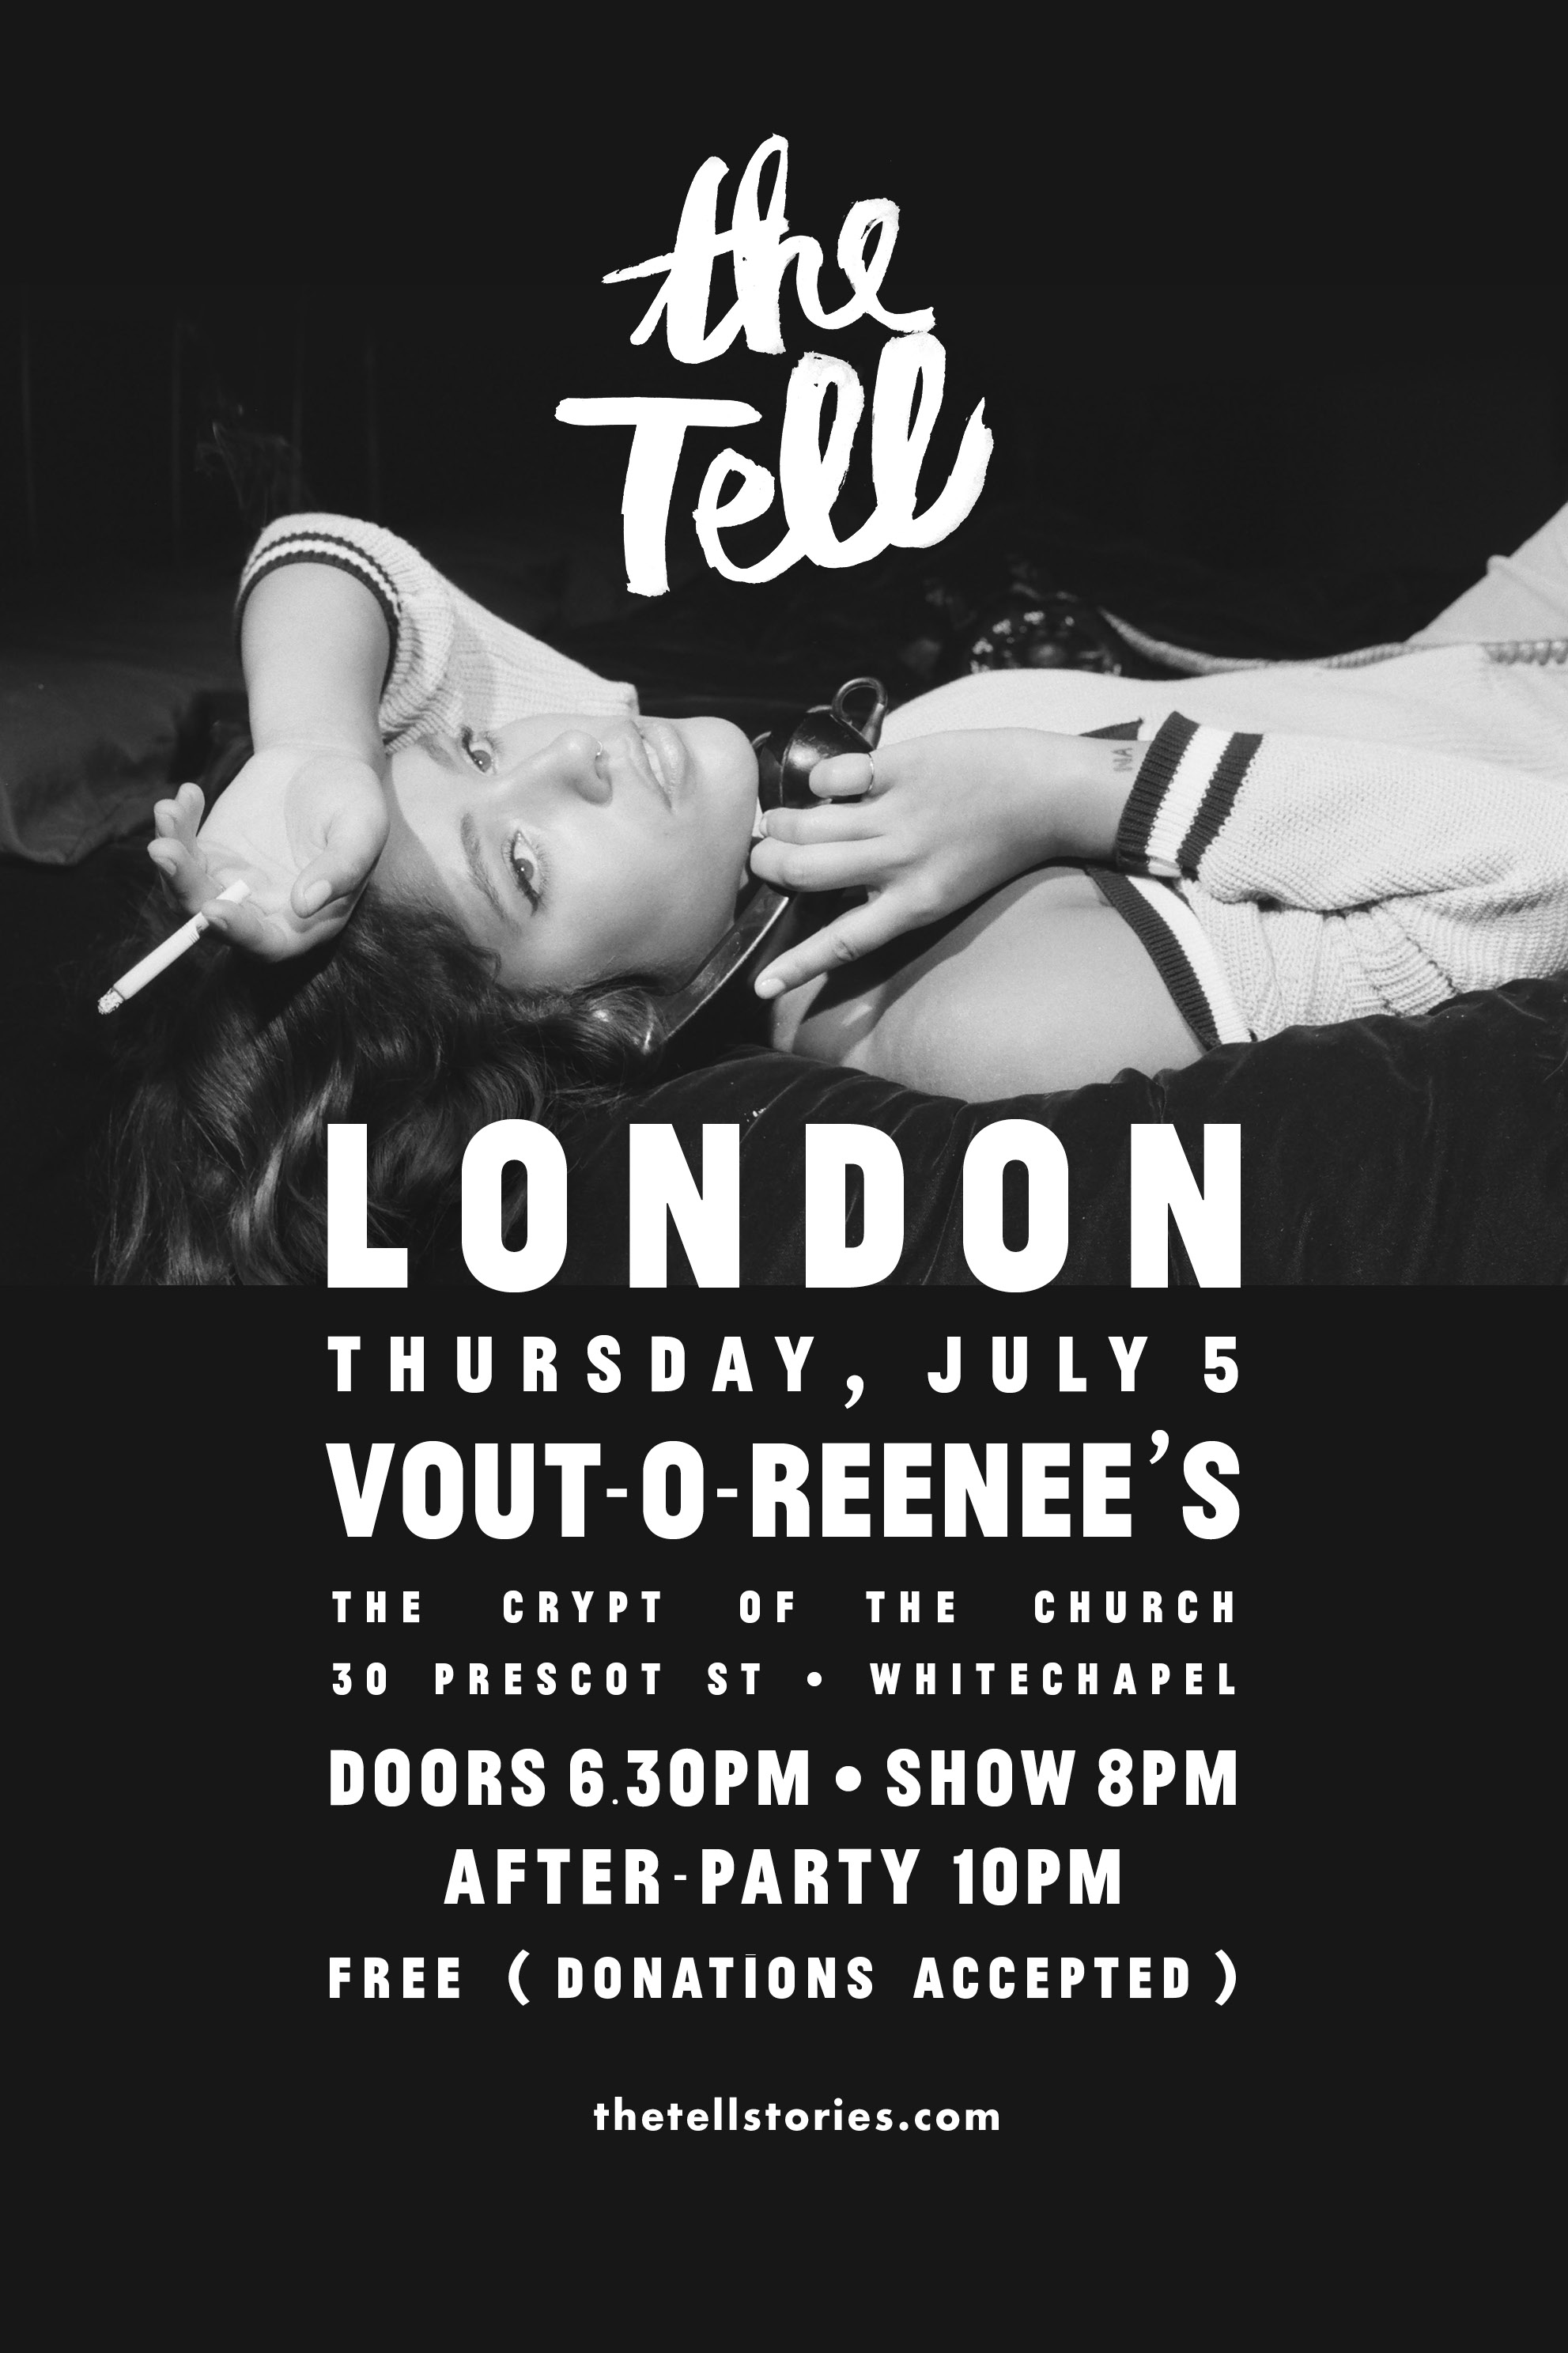 The-Tell-Poster-LDN-flyer--Final copy.jpg